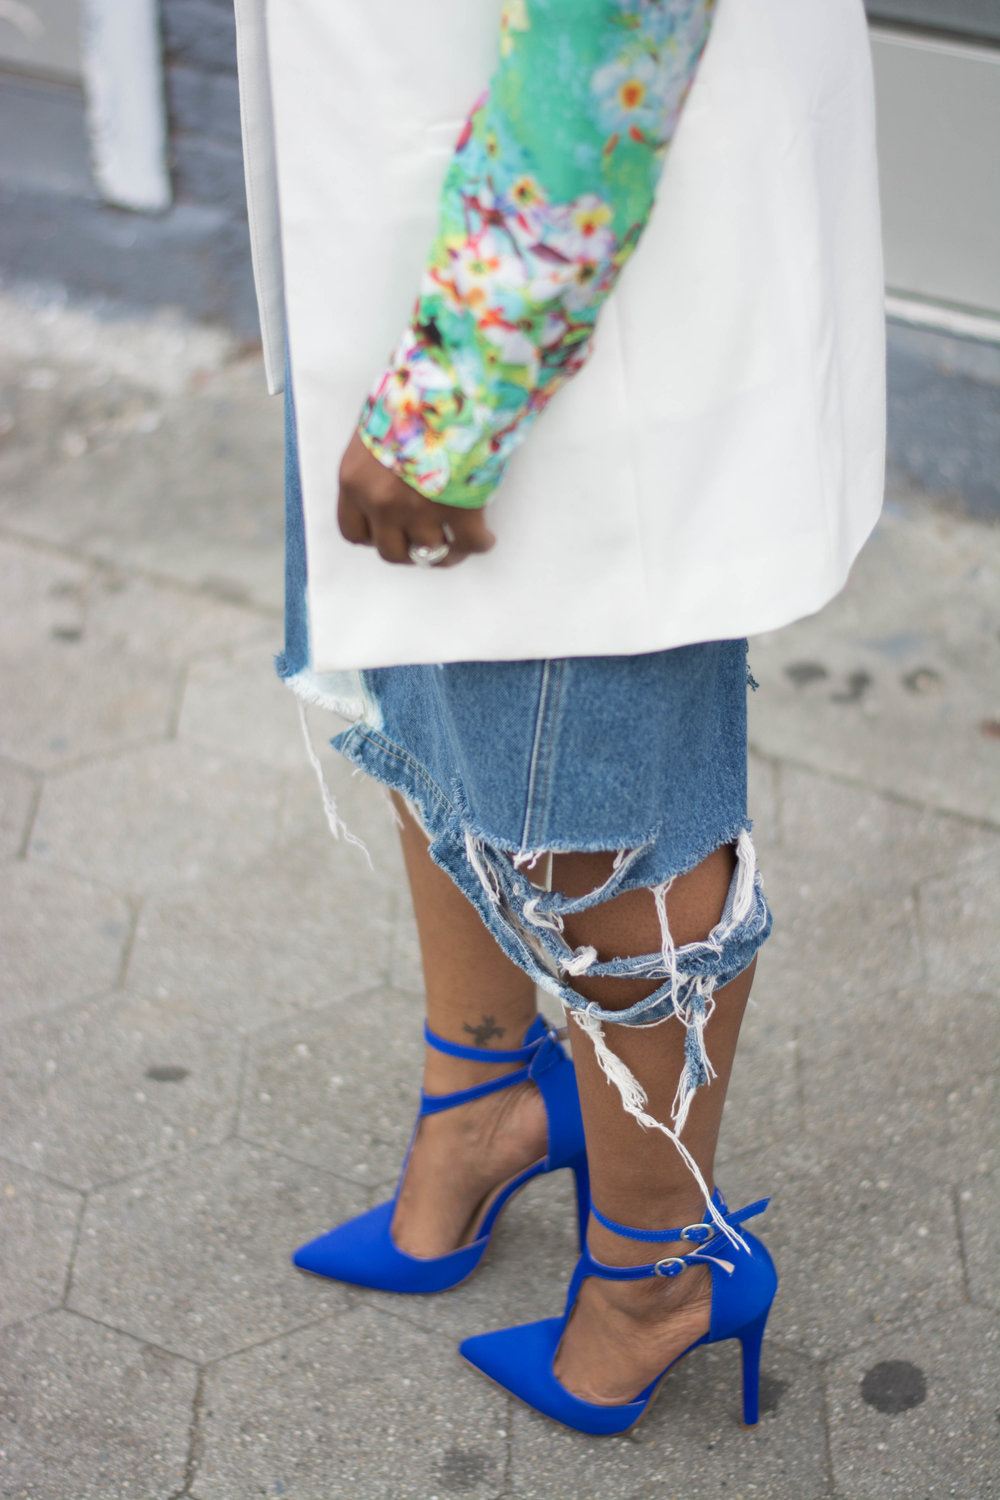 Melodie Stewart, The Style Klazit, distressed skirt, cobalt blue heels, off white vest, Atlanta style blogger, Atlanta street style, Black blogger